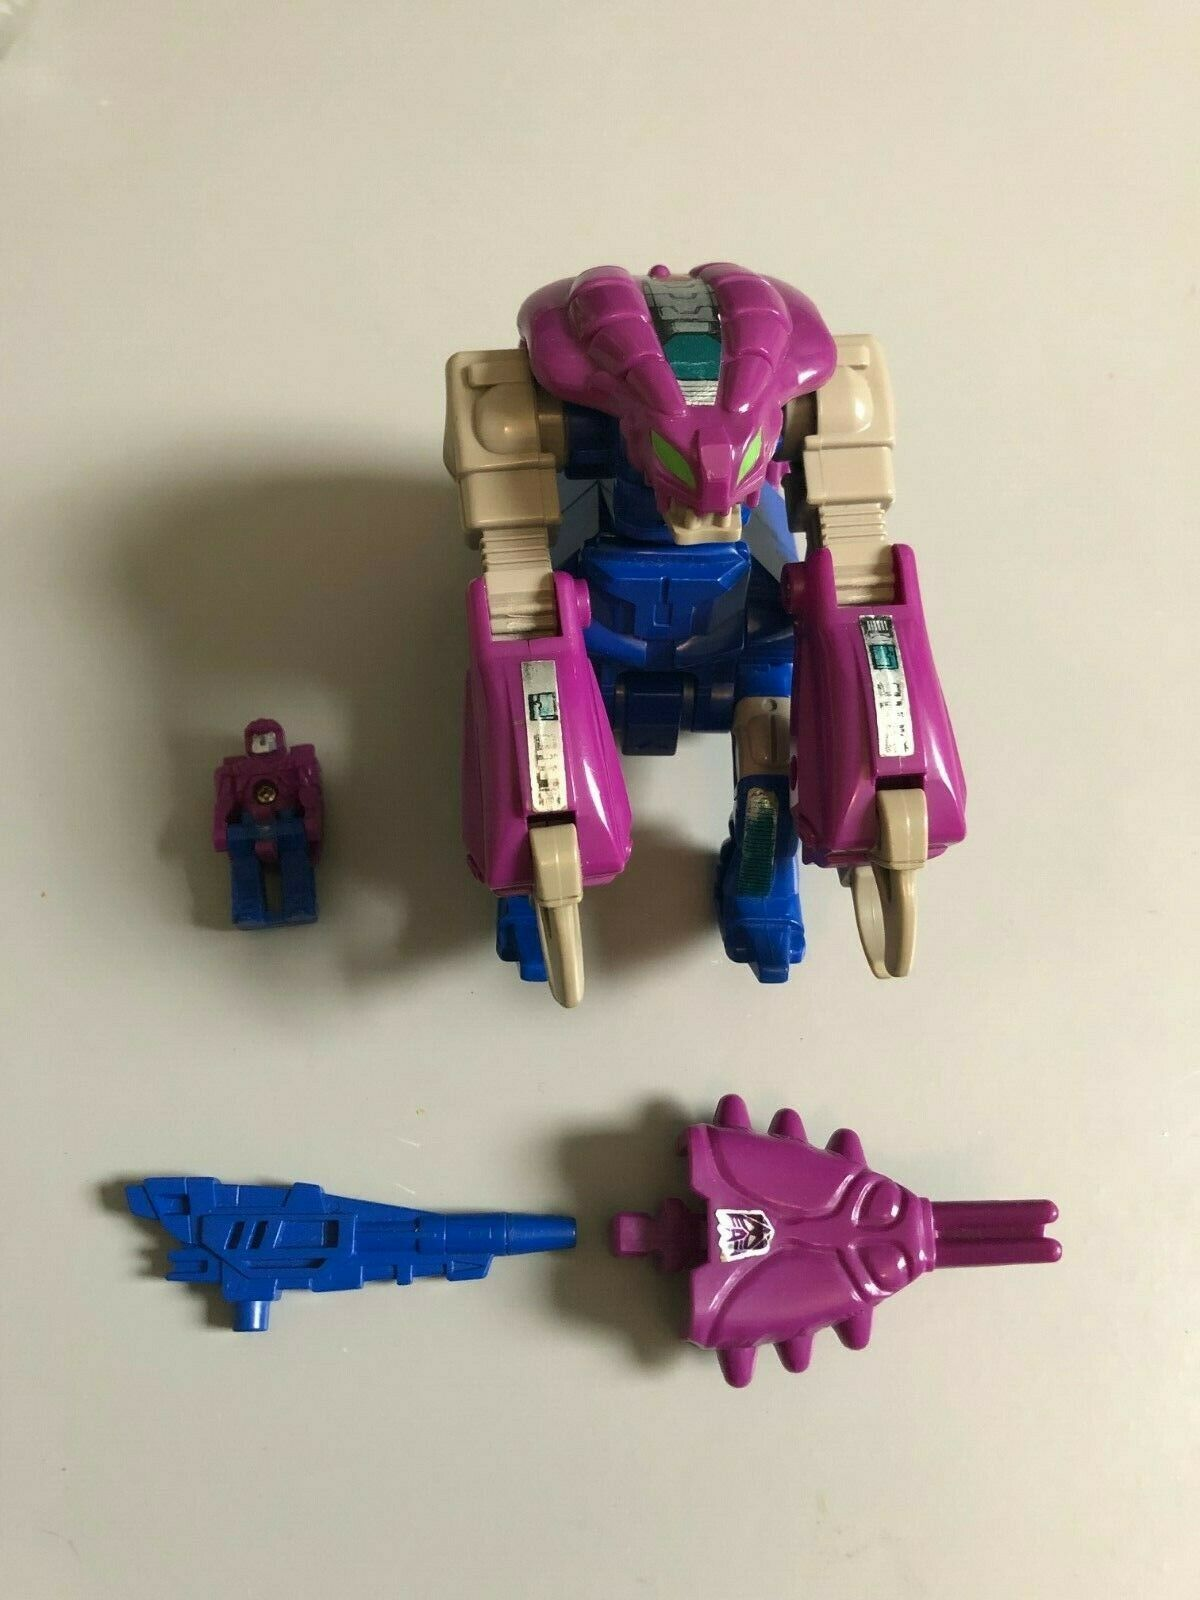 TRANSFORMERS G1 - VINTAGE 1987 - Hasbro Squeezeplay Figure - 100% Complete